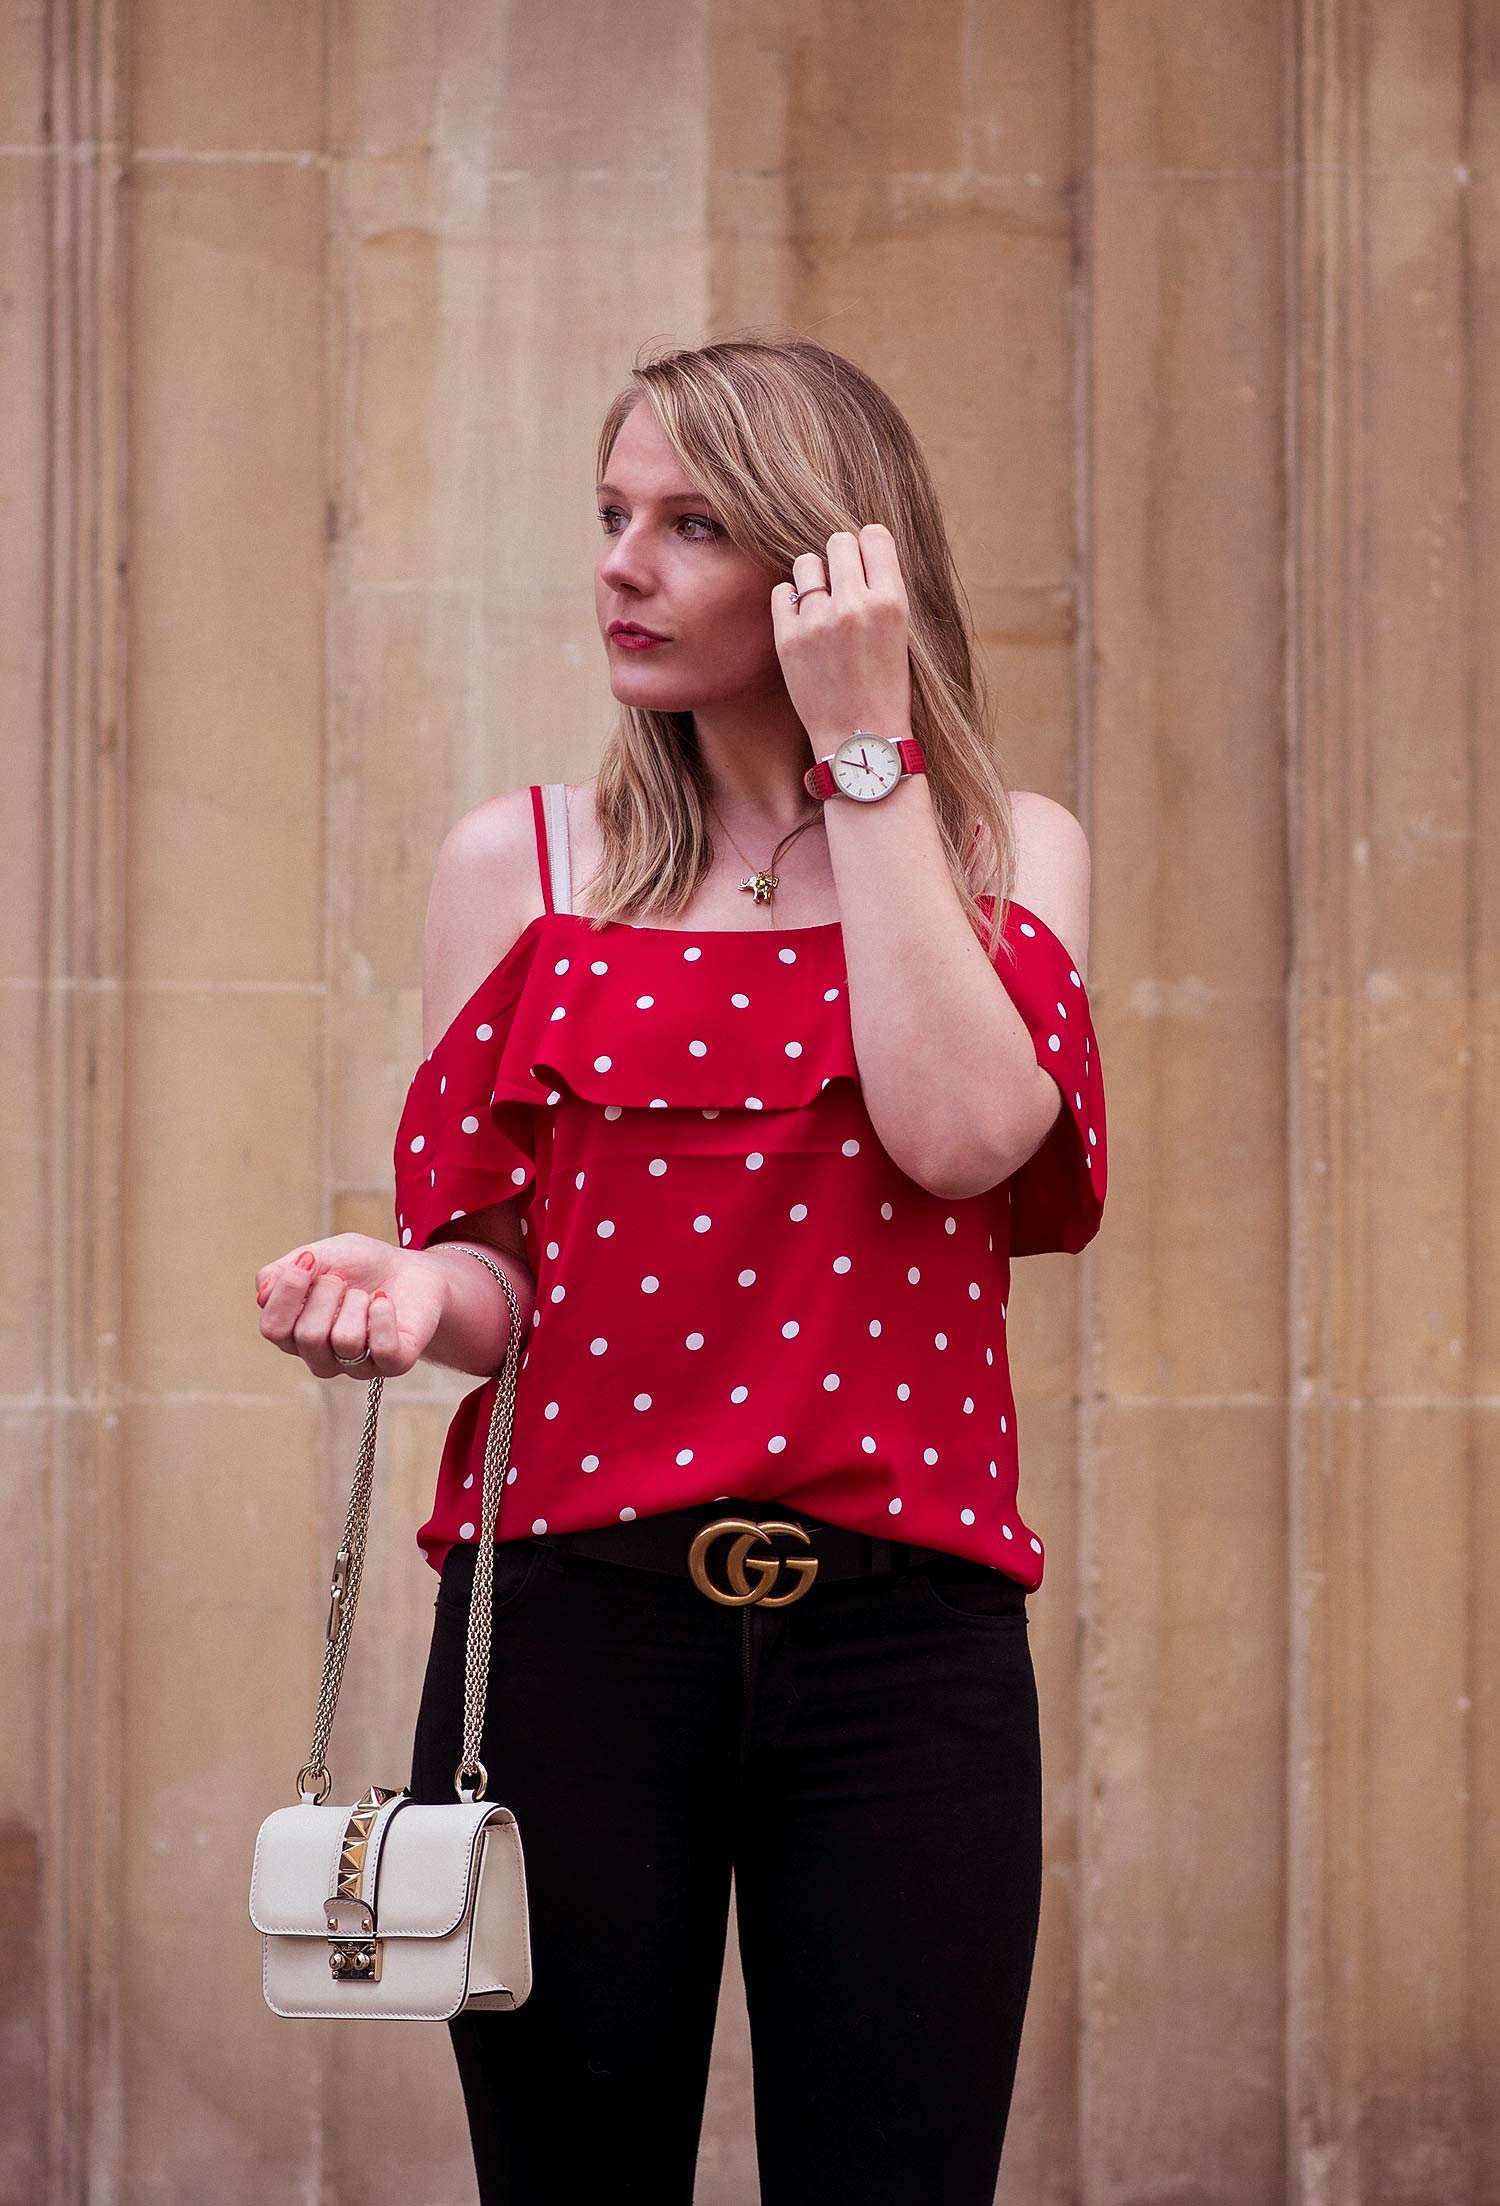 The Red Polka Dot Top